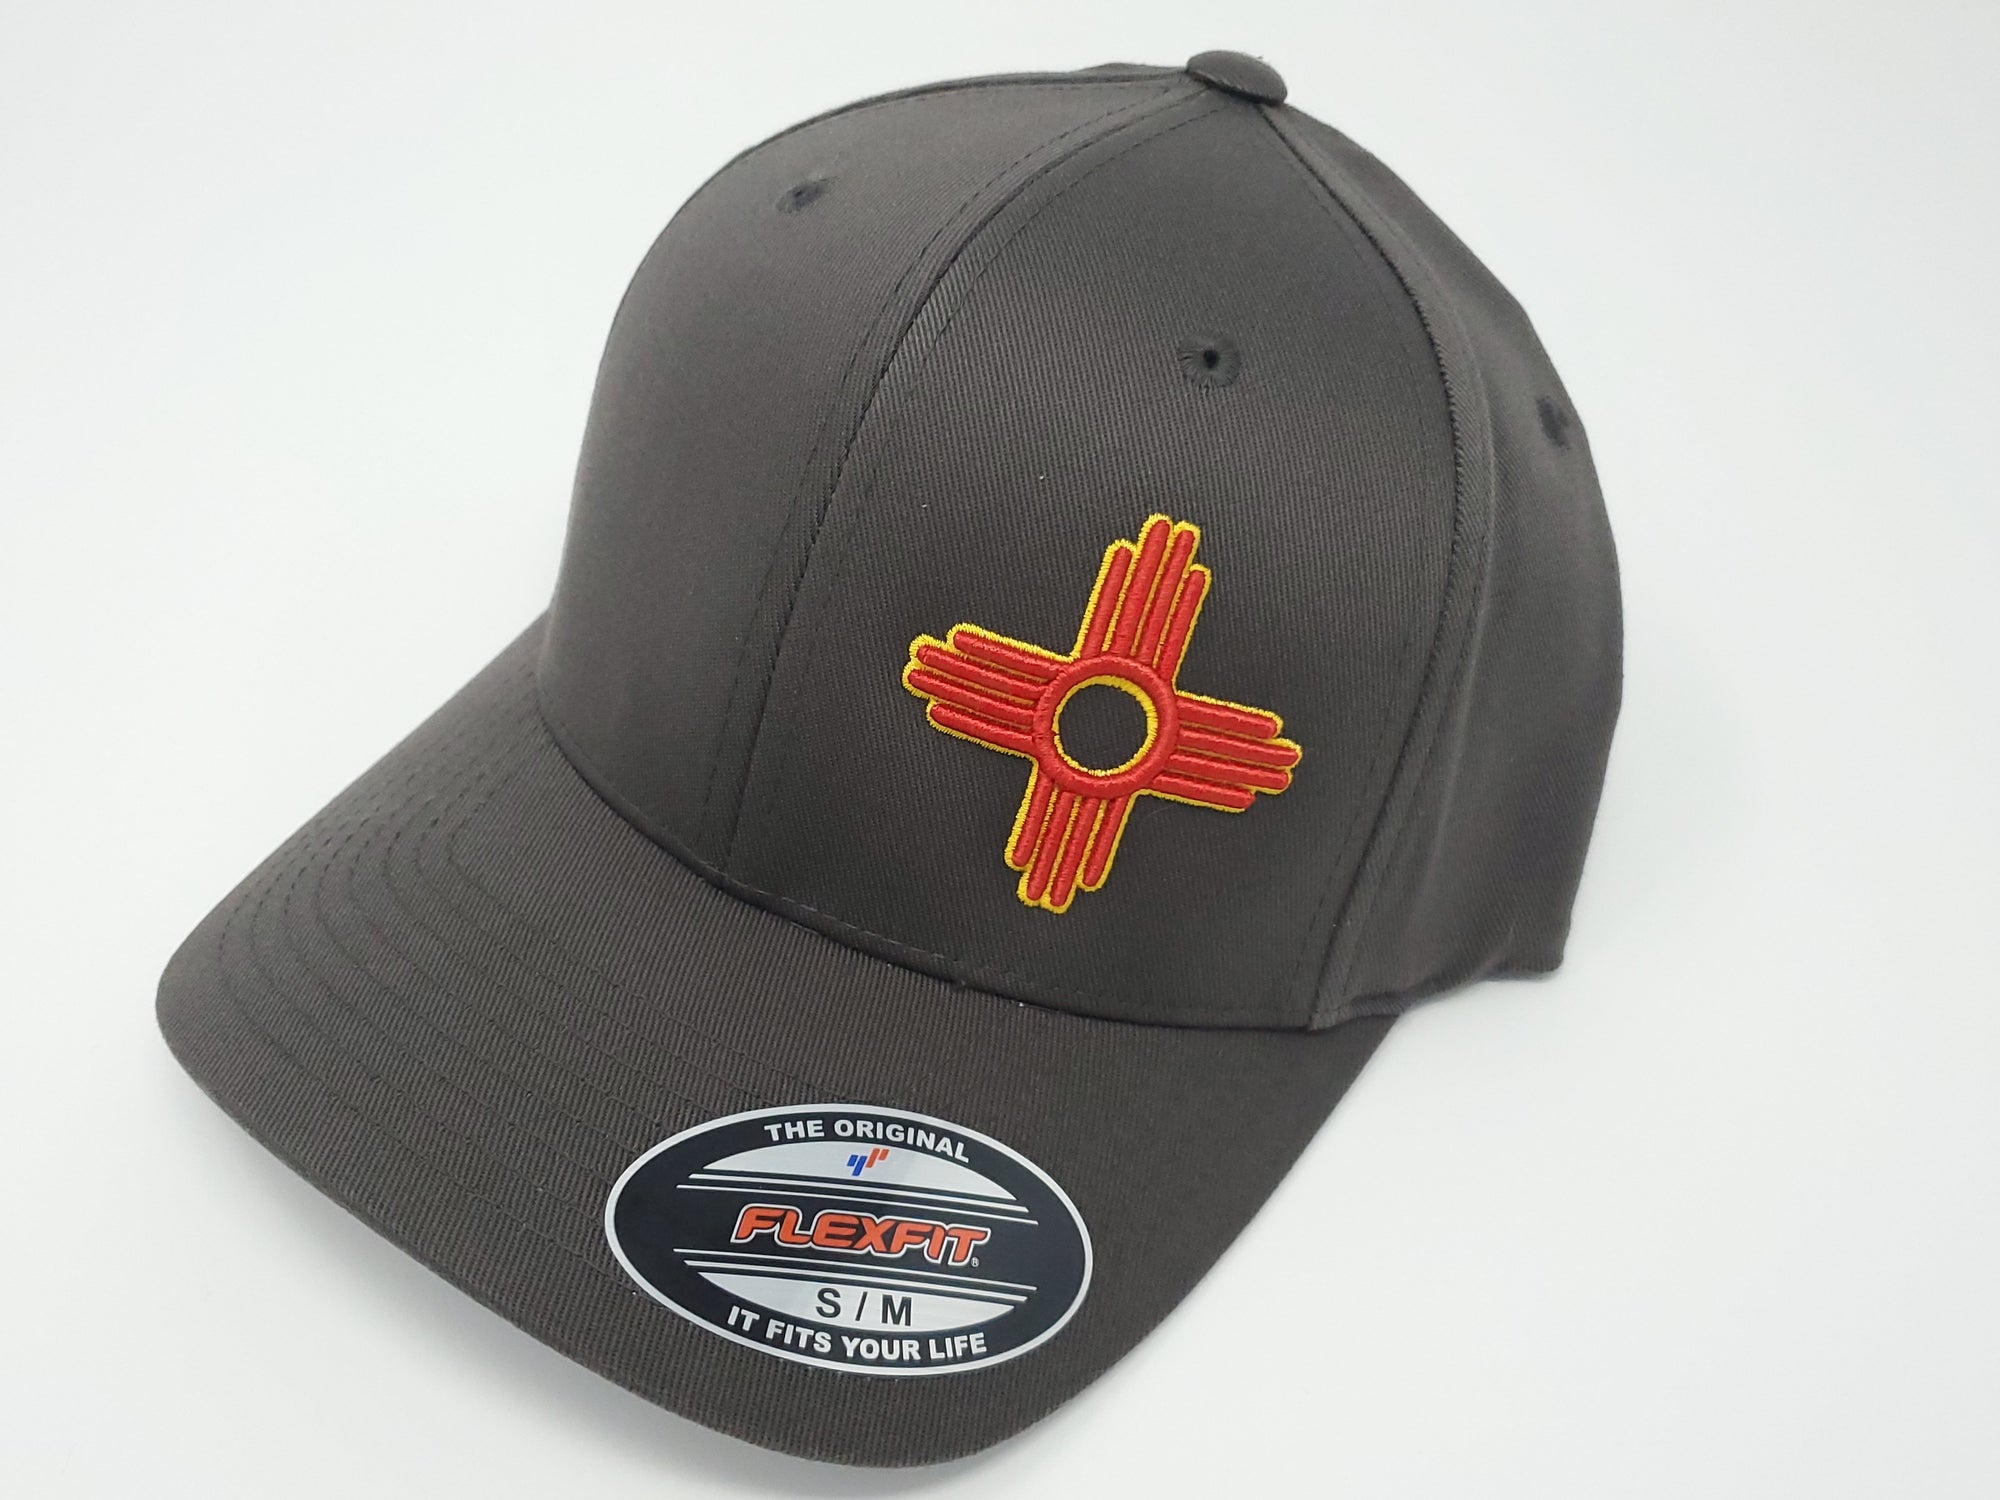 Zia Embroidered Fitted FlexFit Hat - Ragged Apparel Screen Printing and Signs - www.nmshirts.com